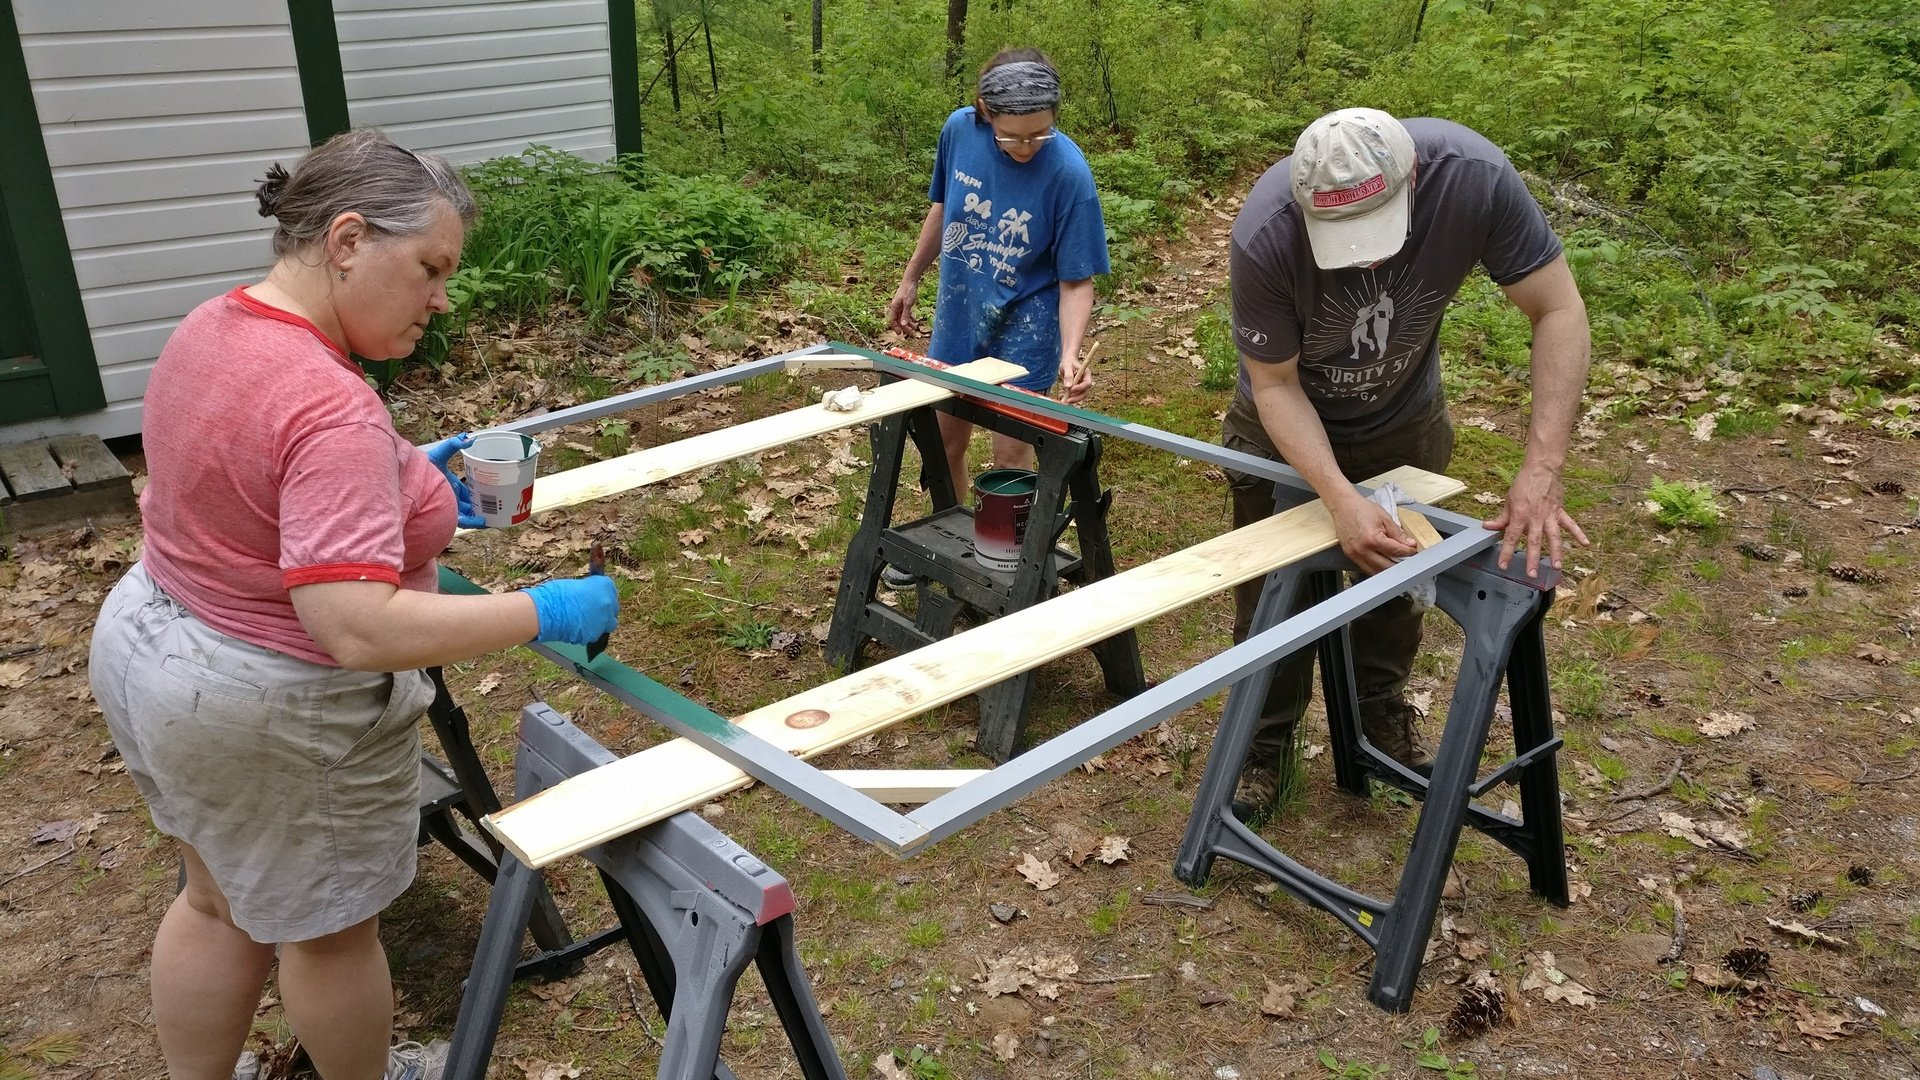 Cath, Clint, and Lorrie painting the frames.